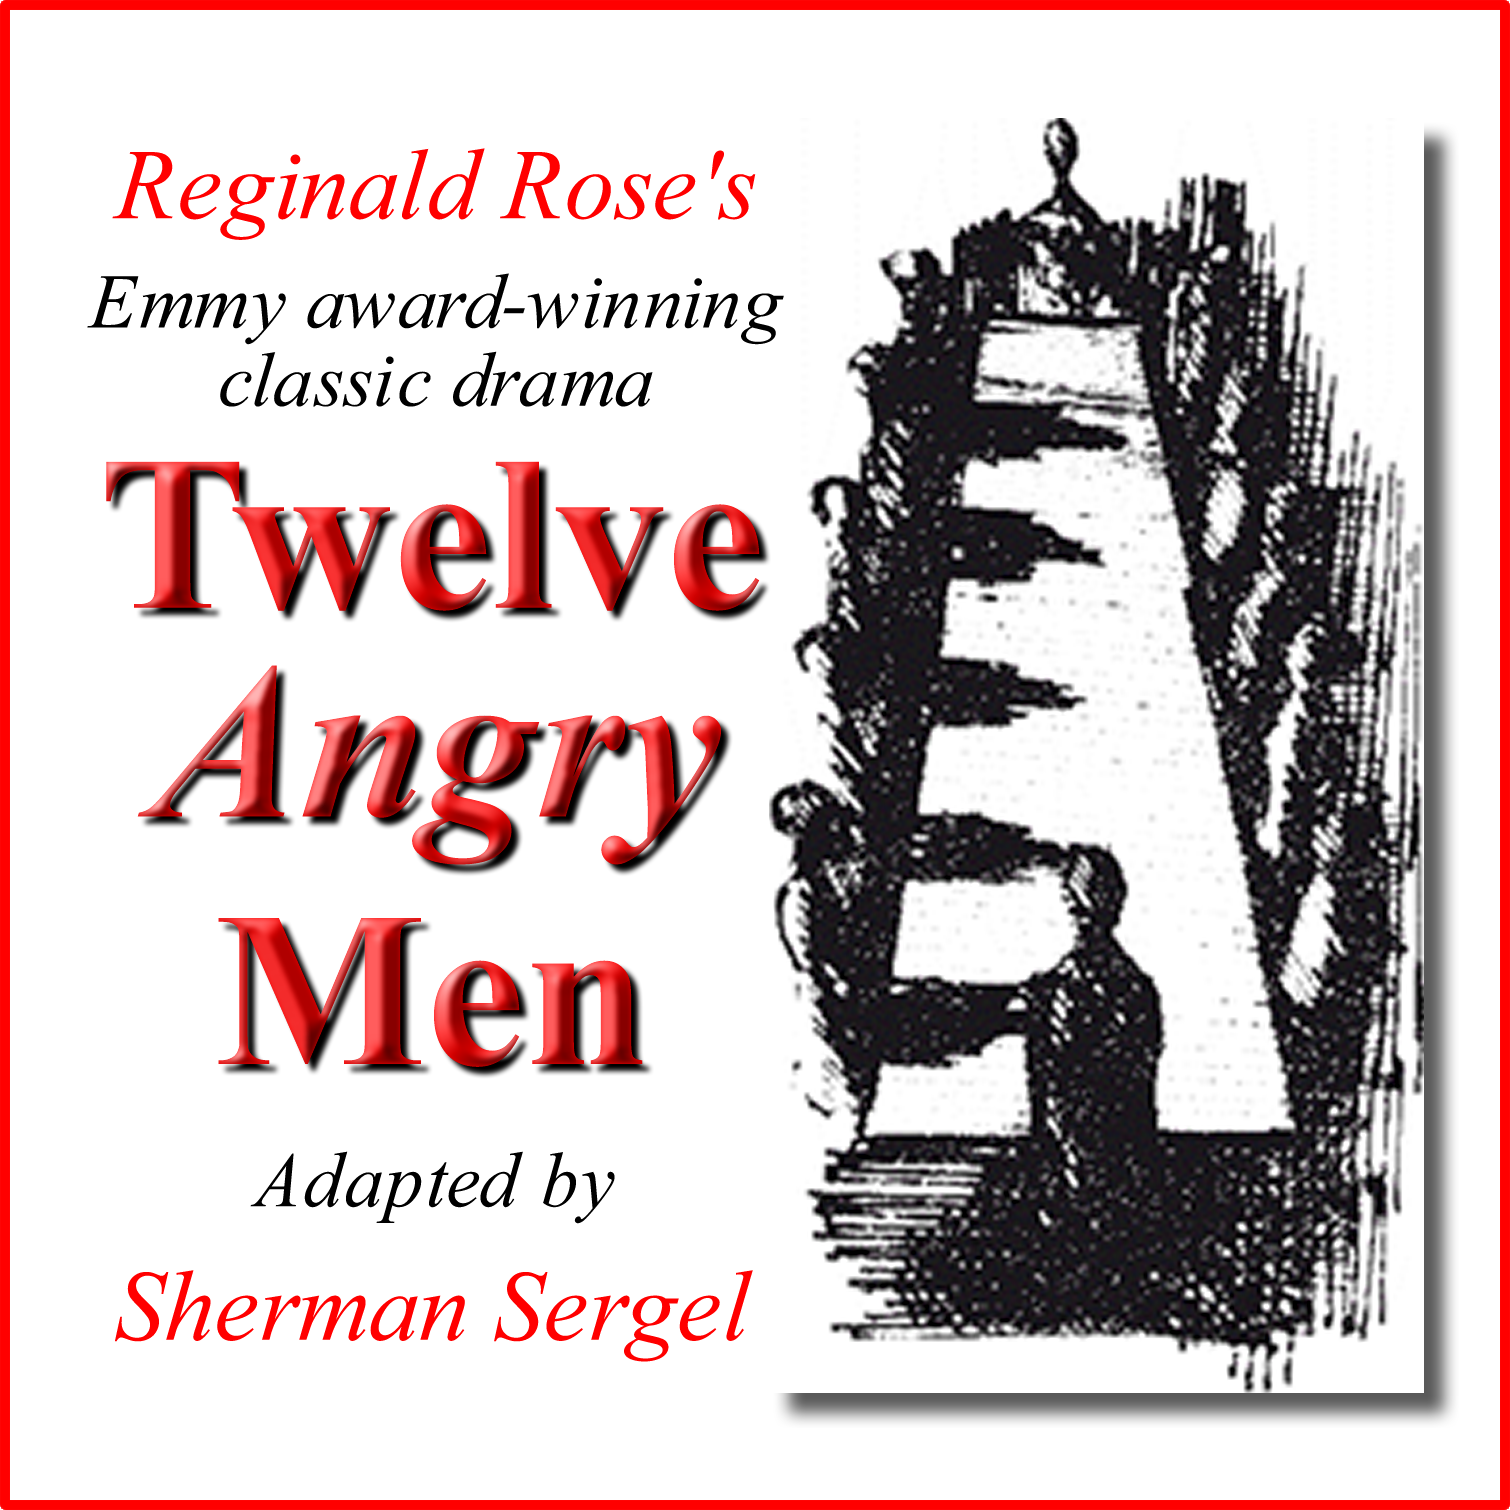 an analysis of 12 angry men by reginald rose Reginald rose (december 10, 1920 – april 19, 2002) was an american film and television writer most widely known for his work in the early years of televi.